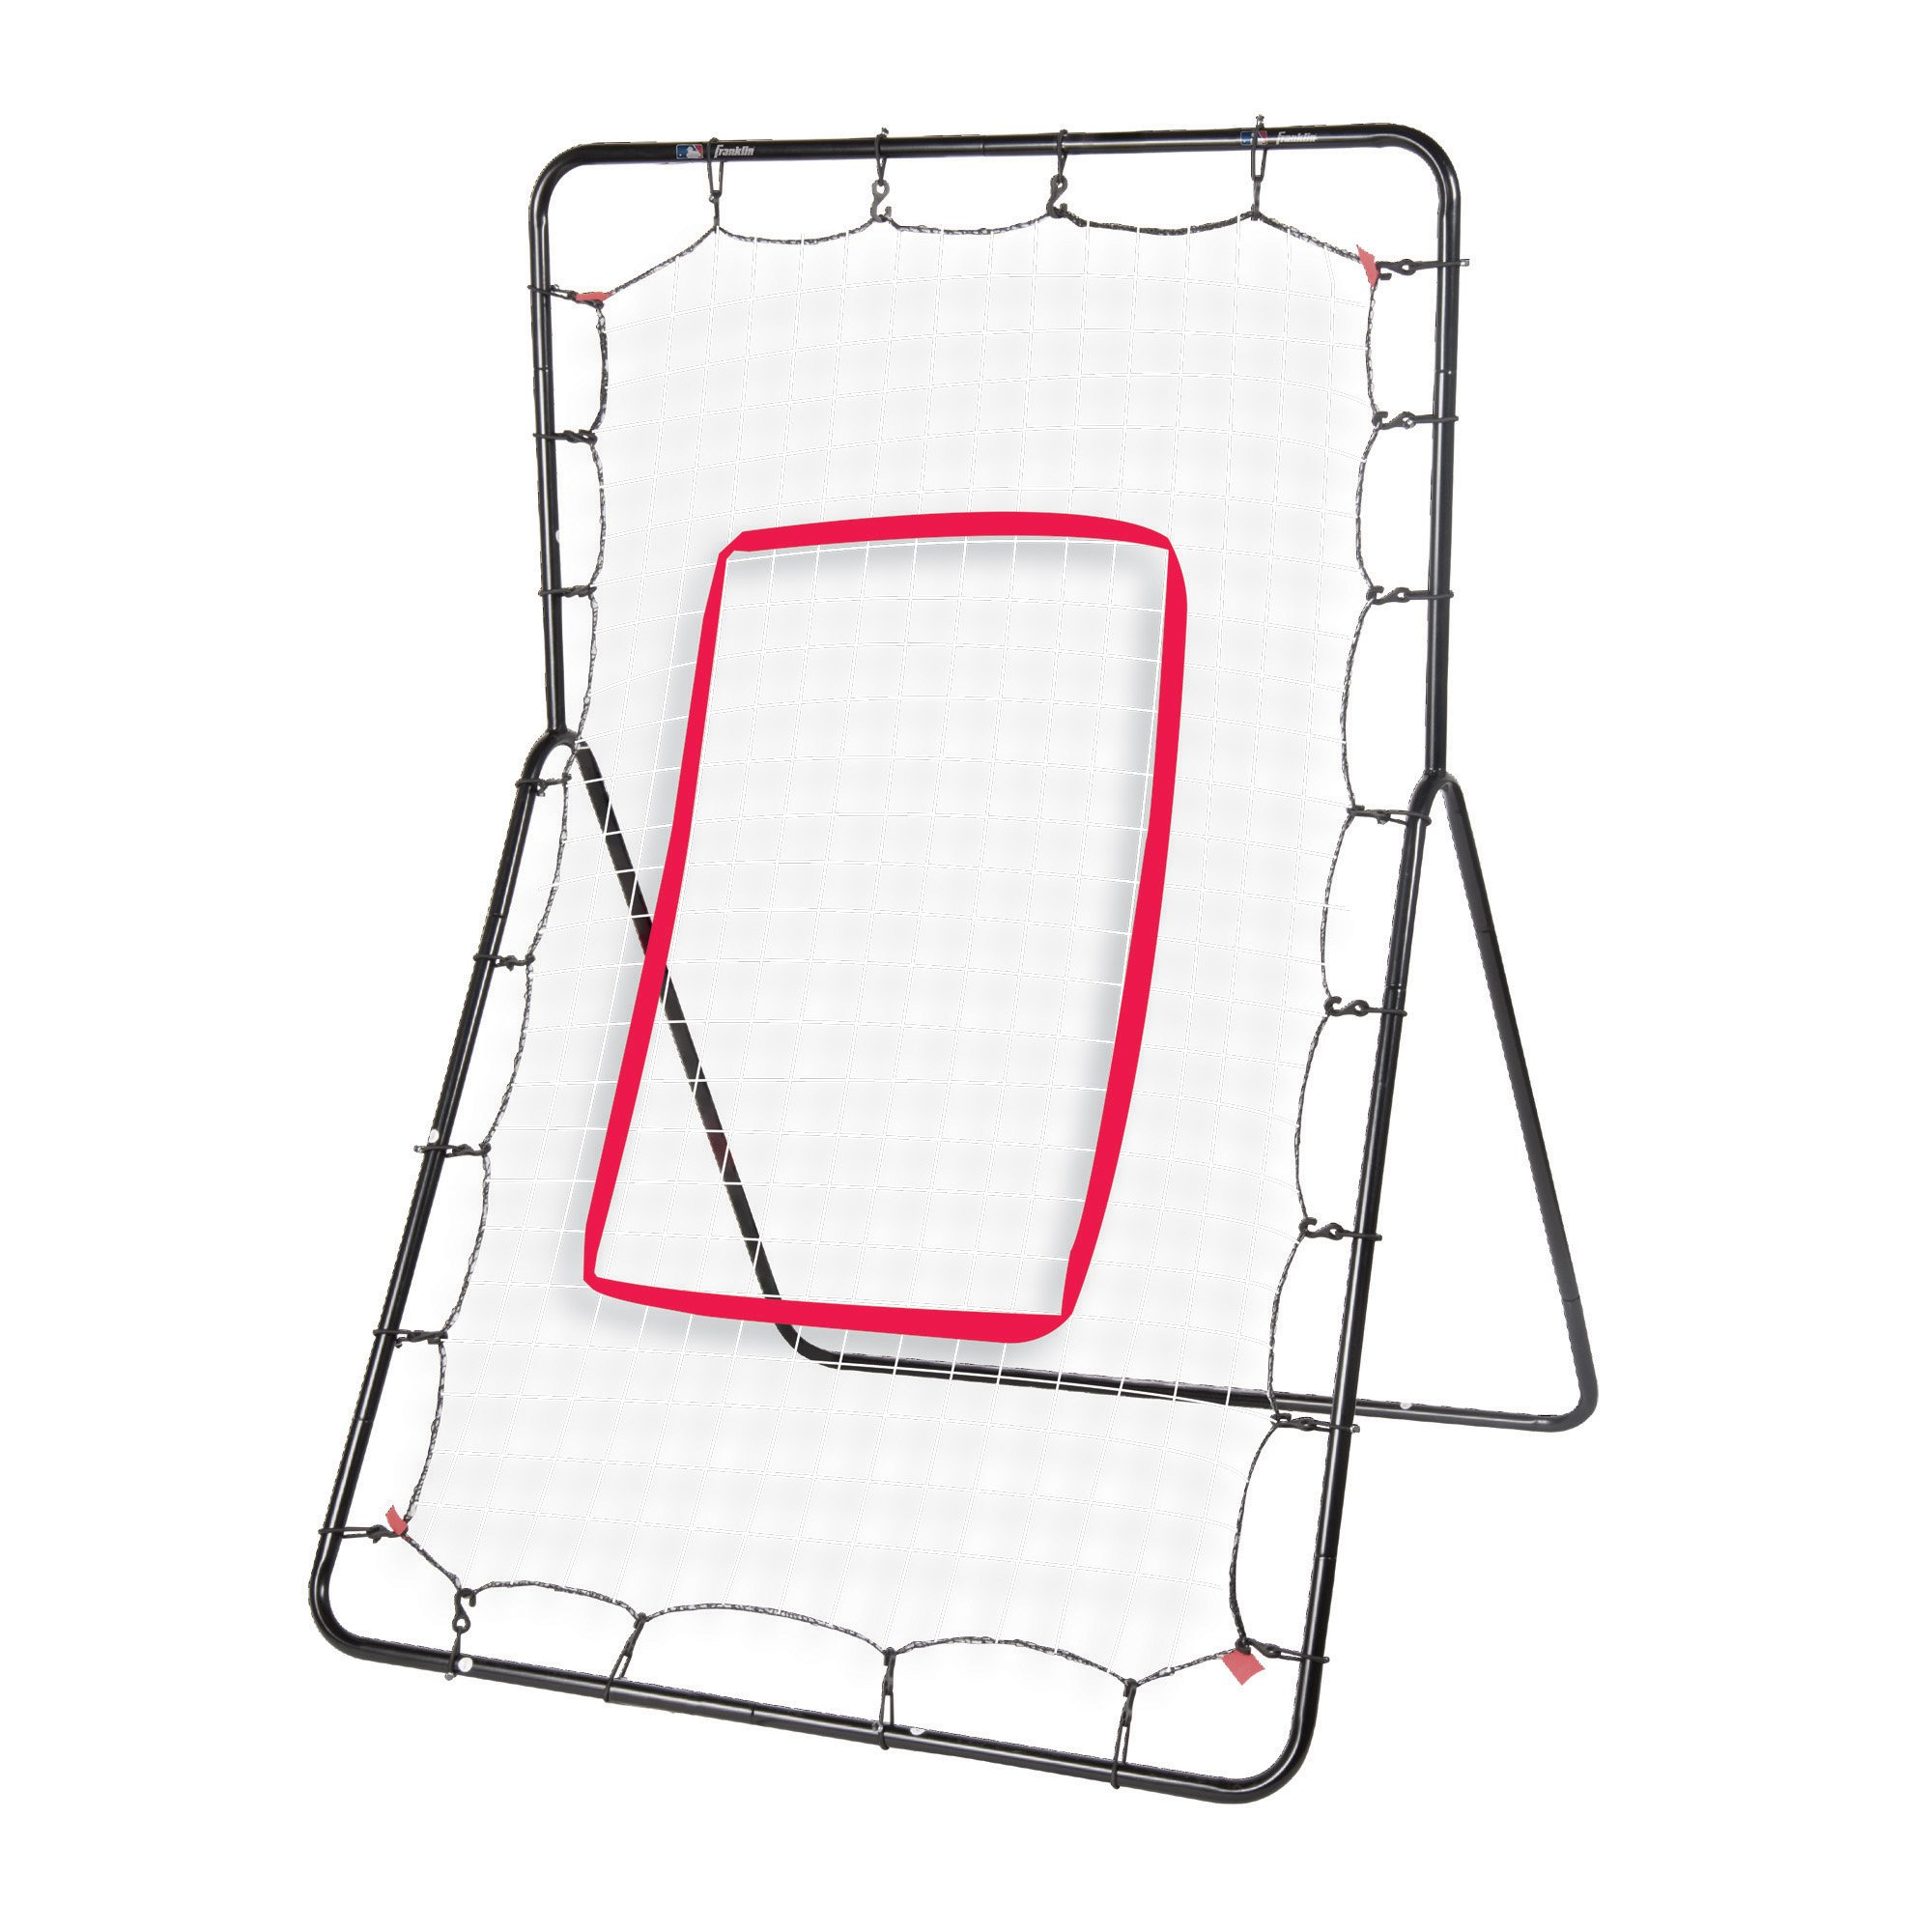 Franklin Sports Pitch Return - Baseball Rebounder and Fielding Trainer - Youth Baseball Training Equipment - Heavy Duty All-Weather Steel Construction - 55 x 36 Inch by Franklin Sports